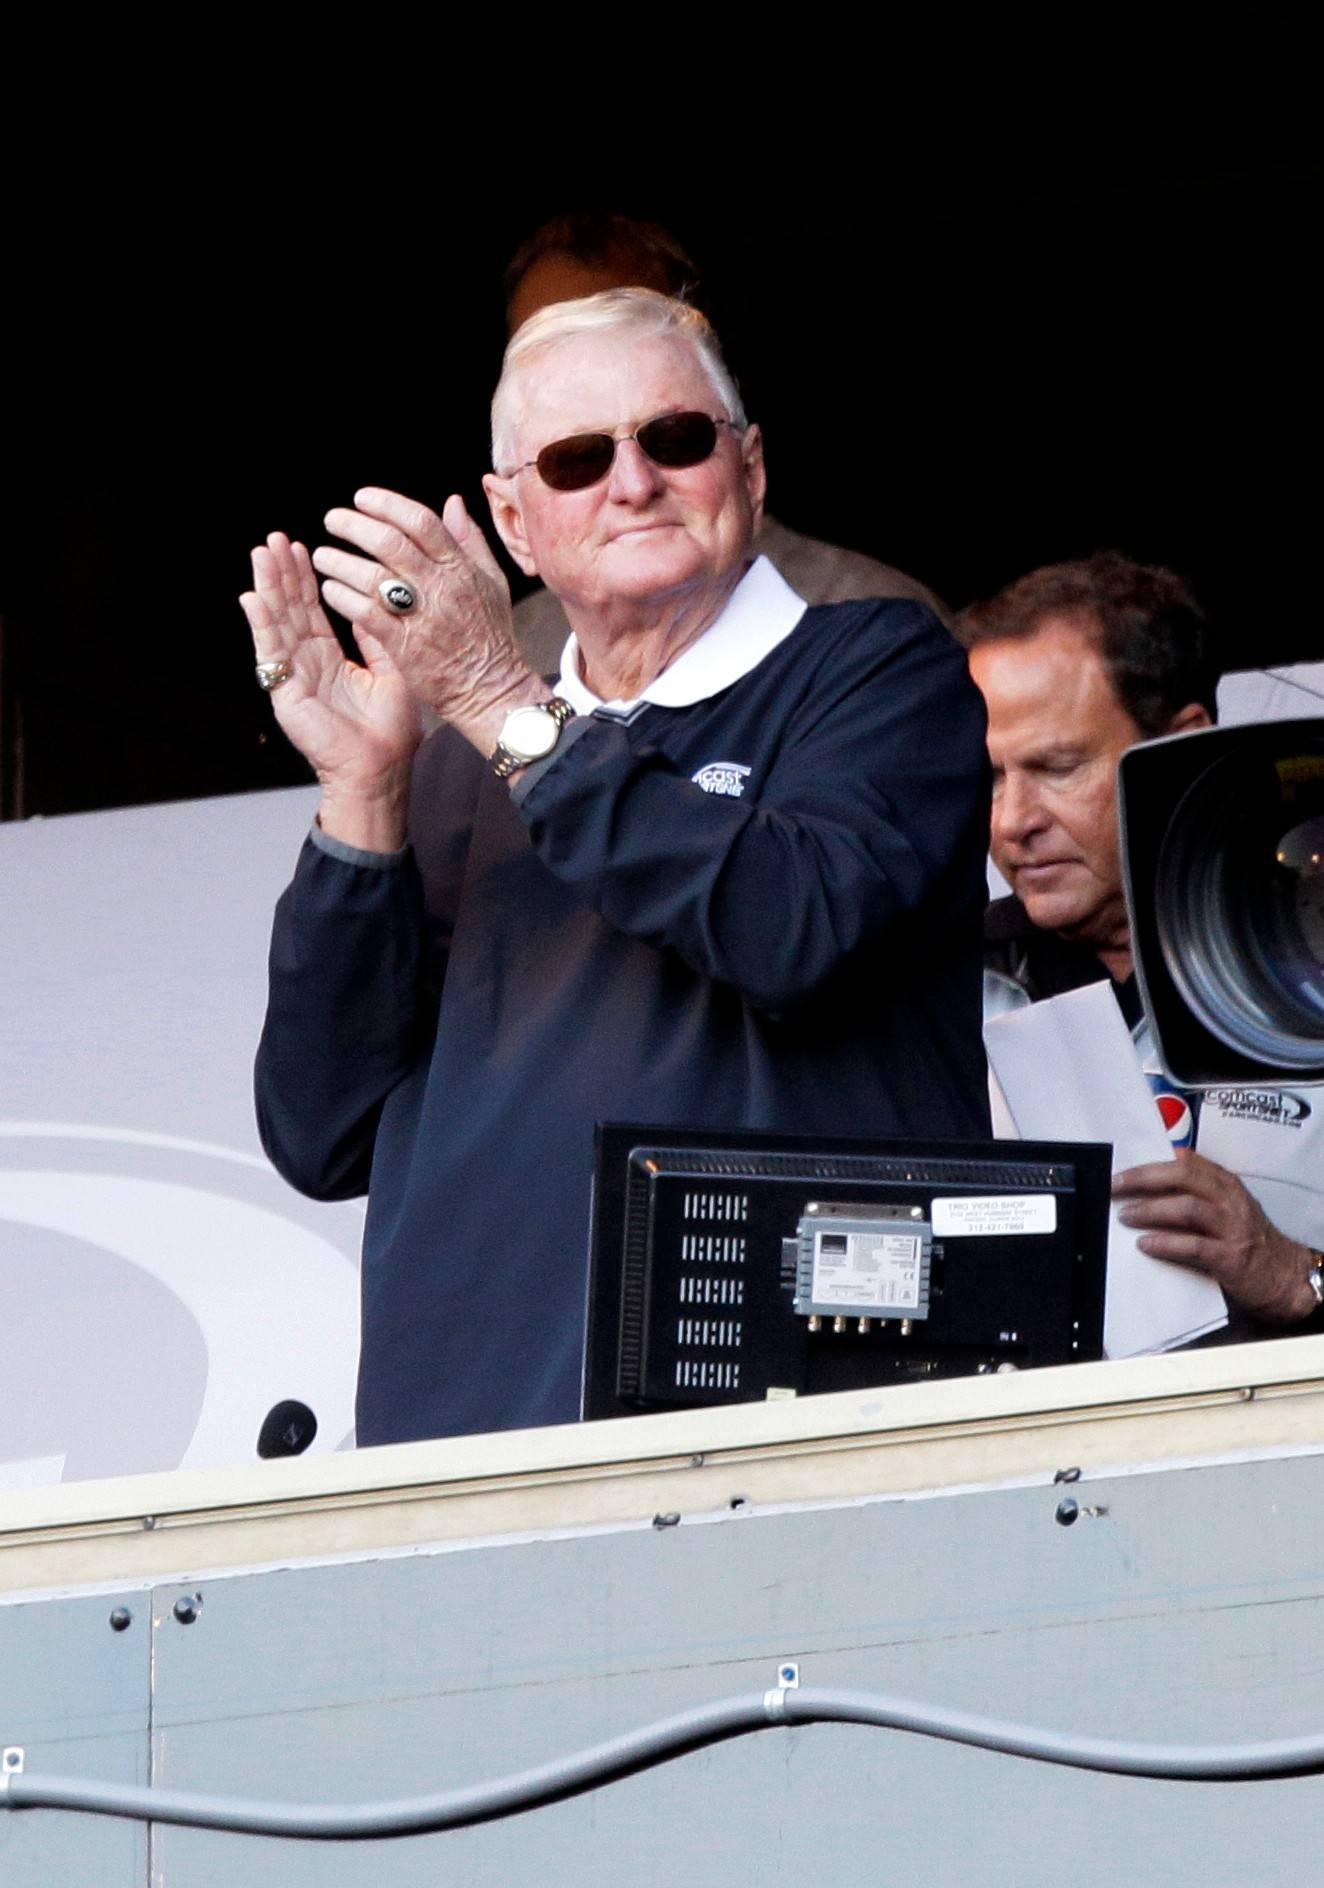 Ken Harrelson doesn't sound like he's ready to retire anytime soon, but maybe he won't go on the road so much.